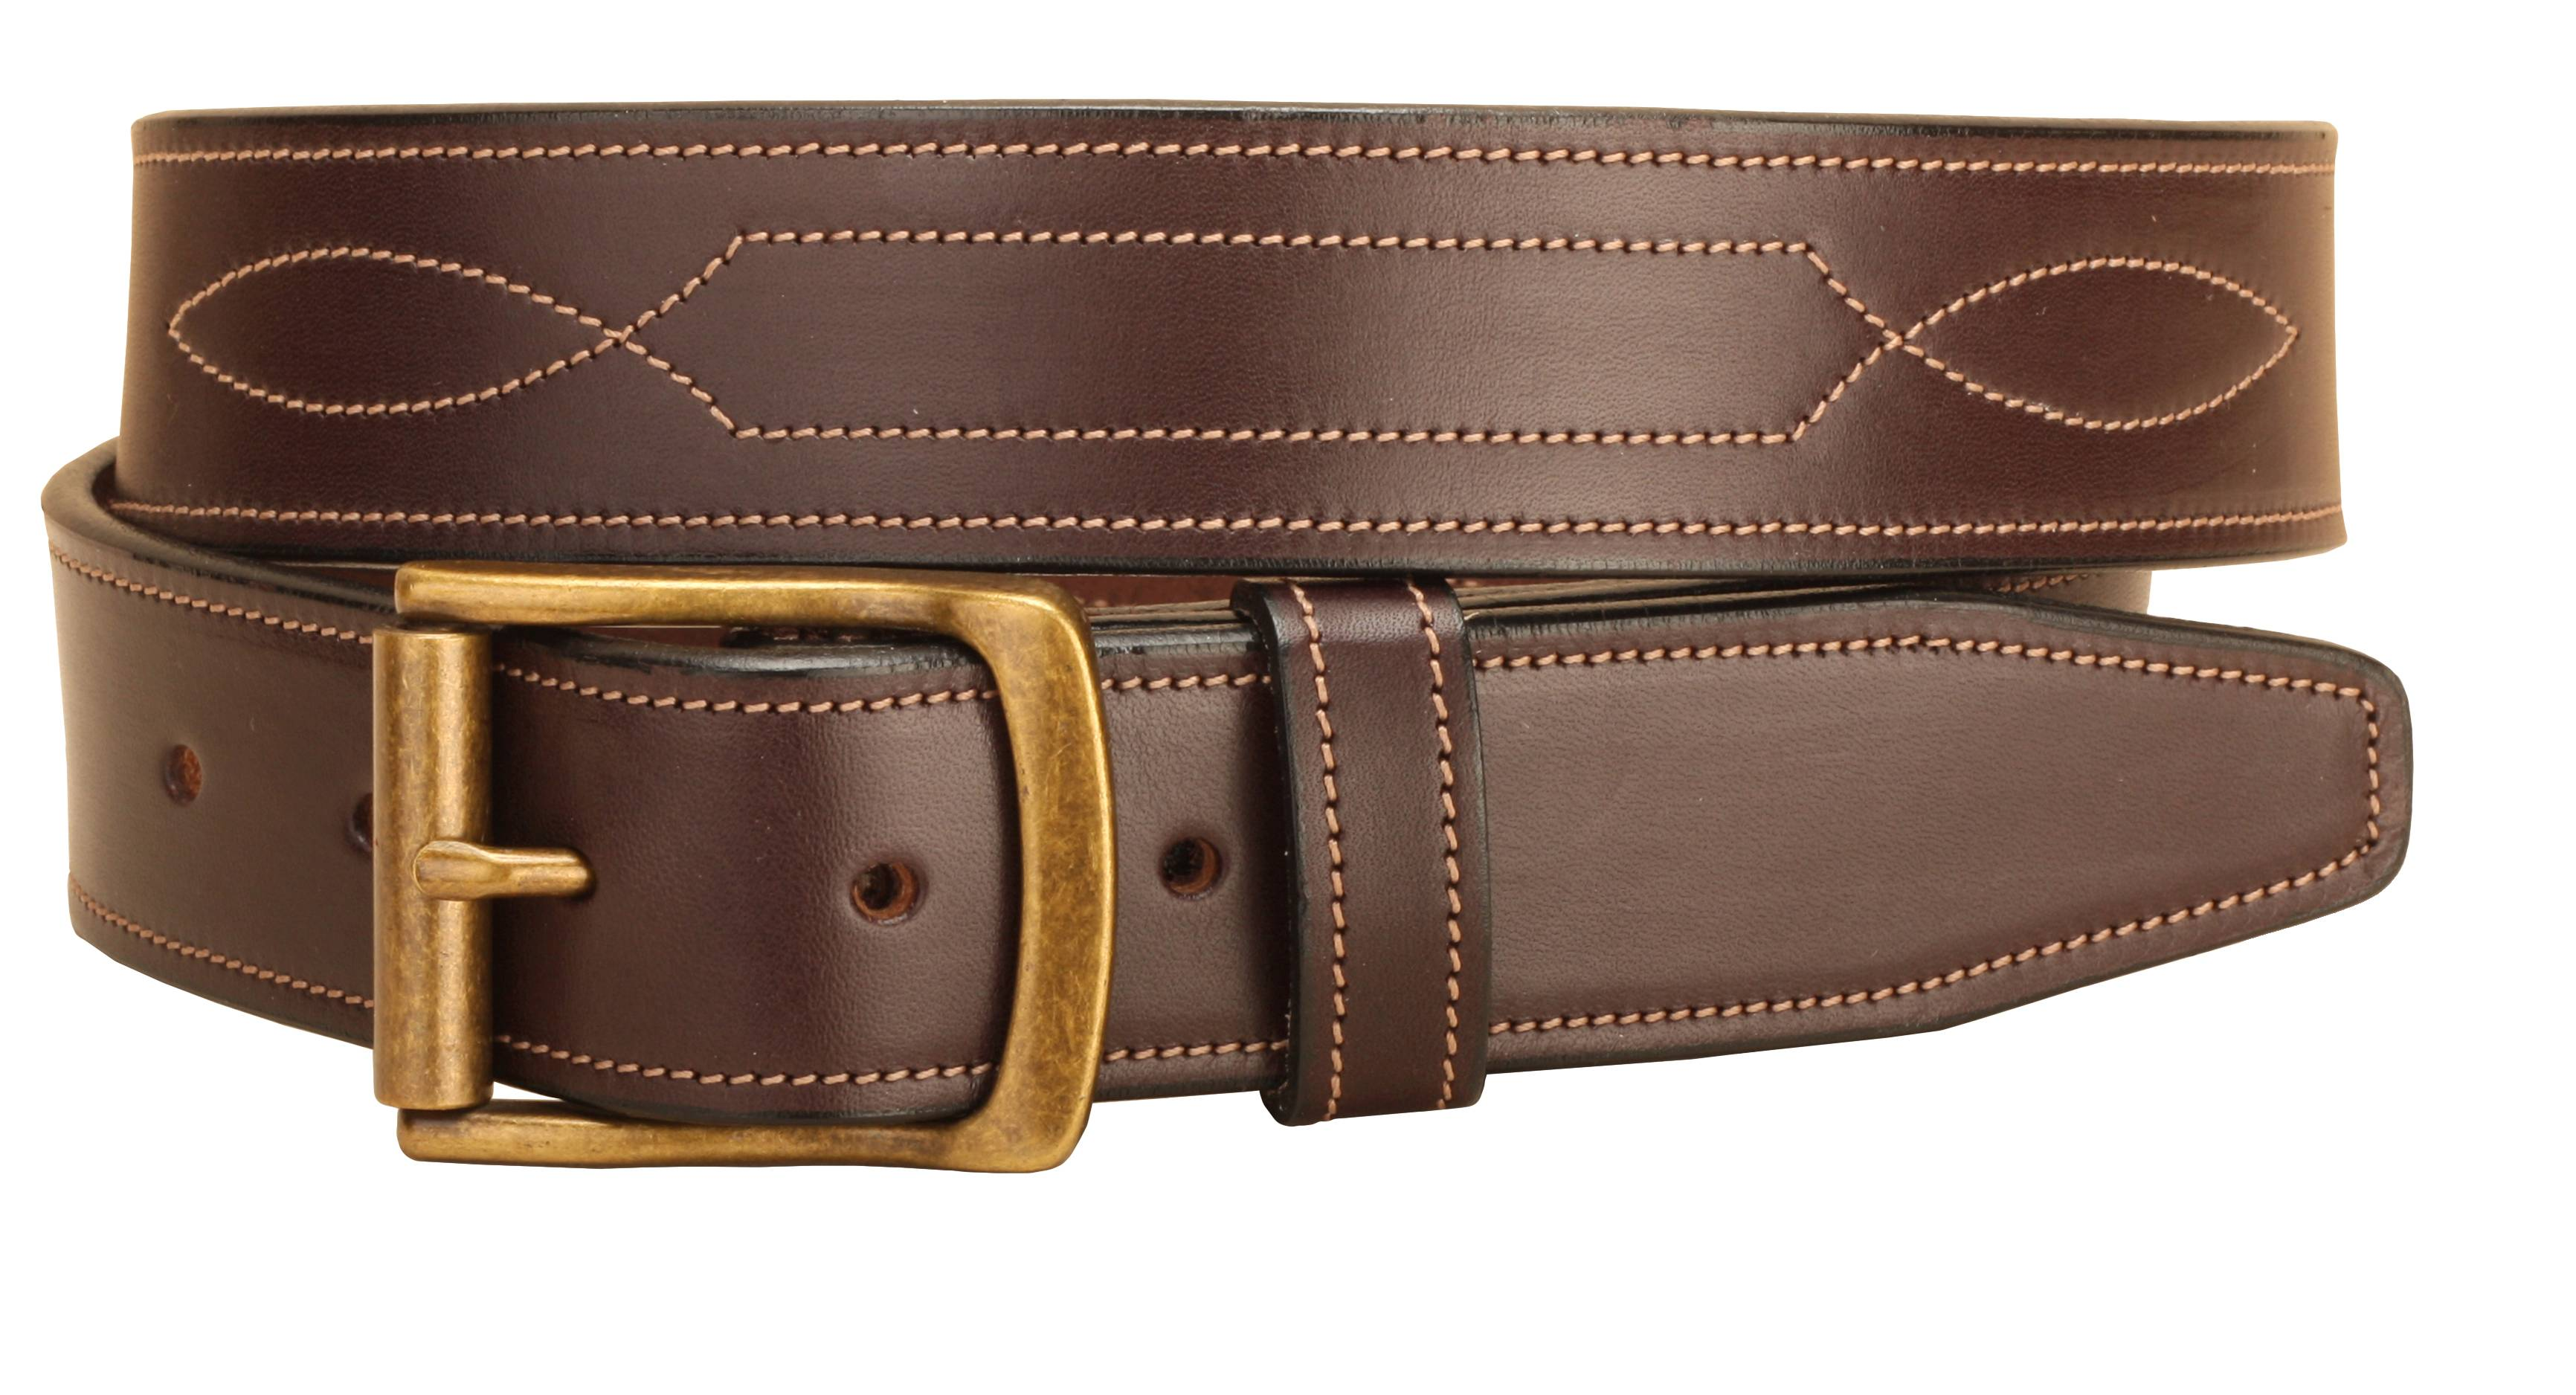 Tory Leather Triple Stitched Pattern Leather Belt